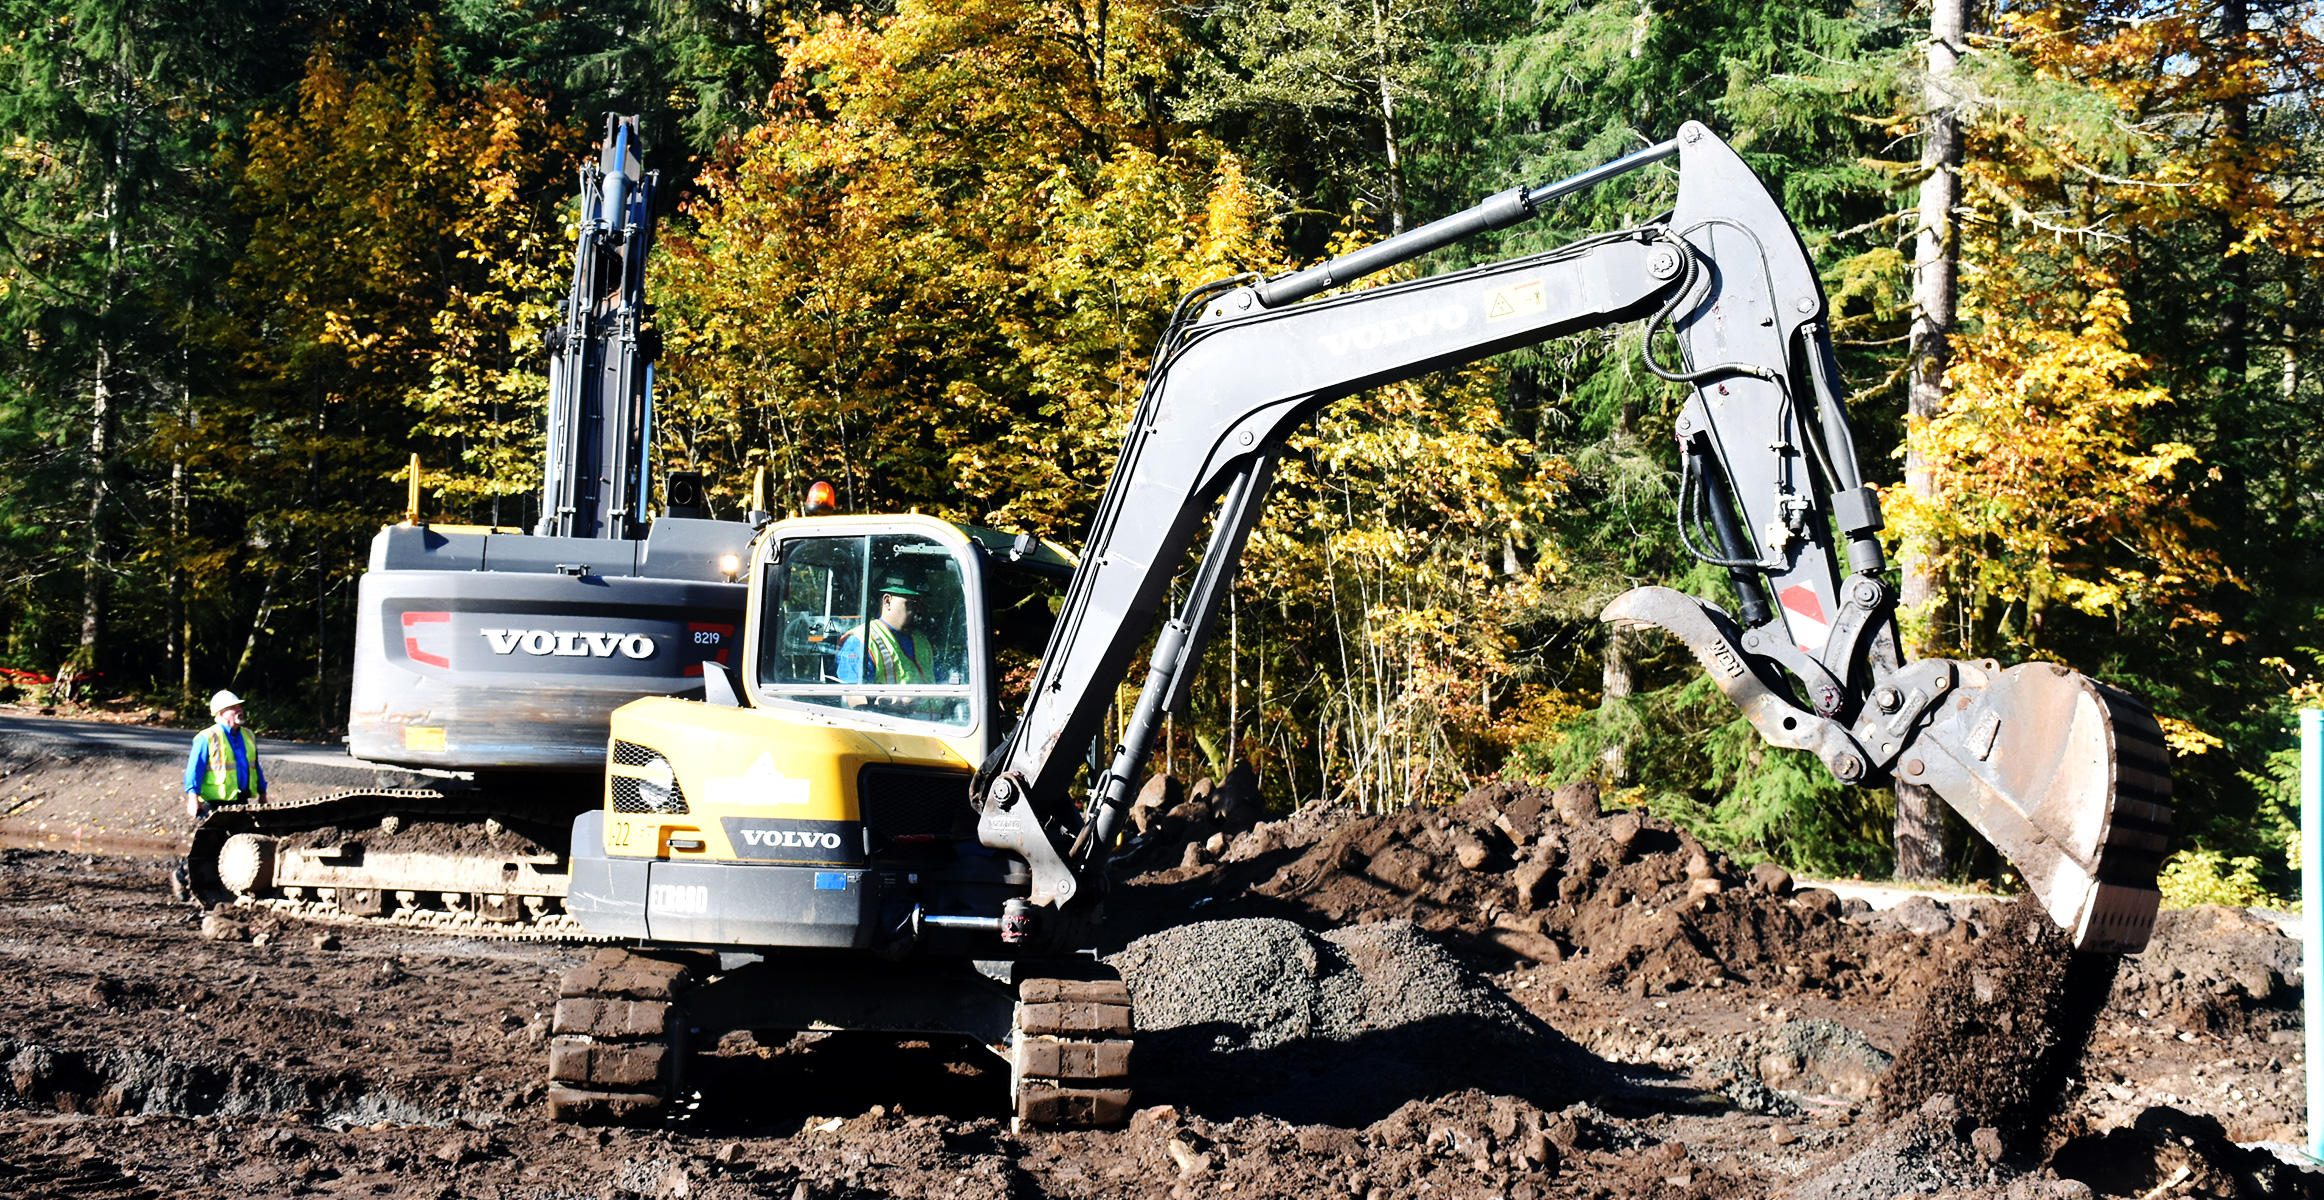 Volvo mini excavator at Janz Enterprises in Oregon